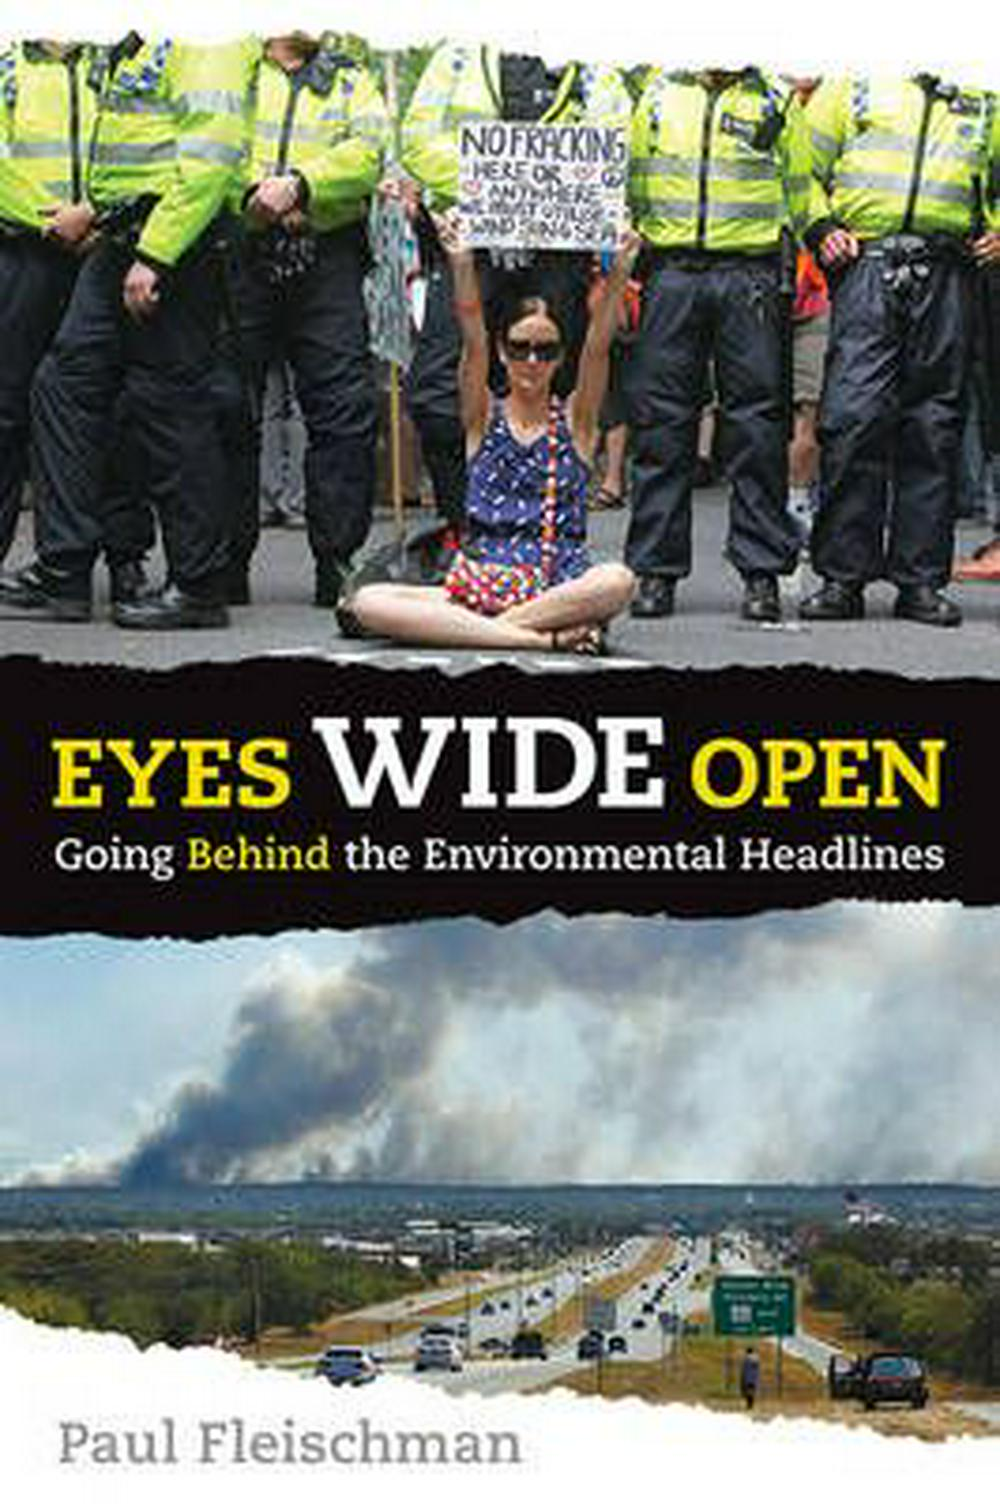 Eyes Wide Open: Going Behind the Environmental Headlines by Paul Fleischman, ISBN: 9780763675455